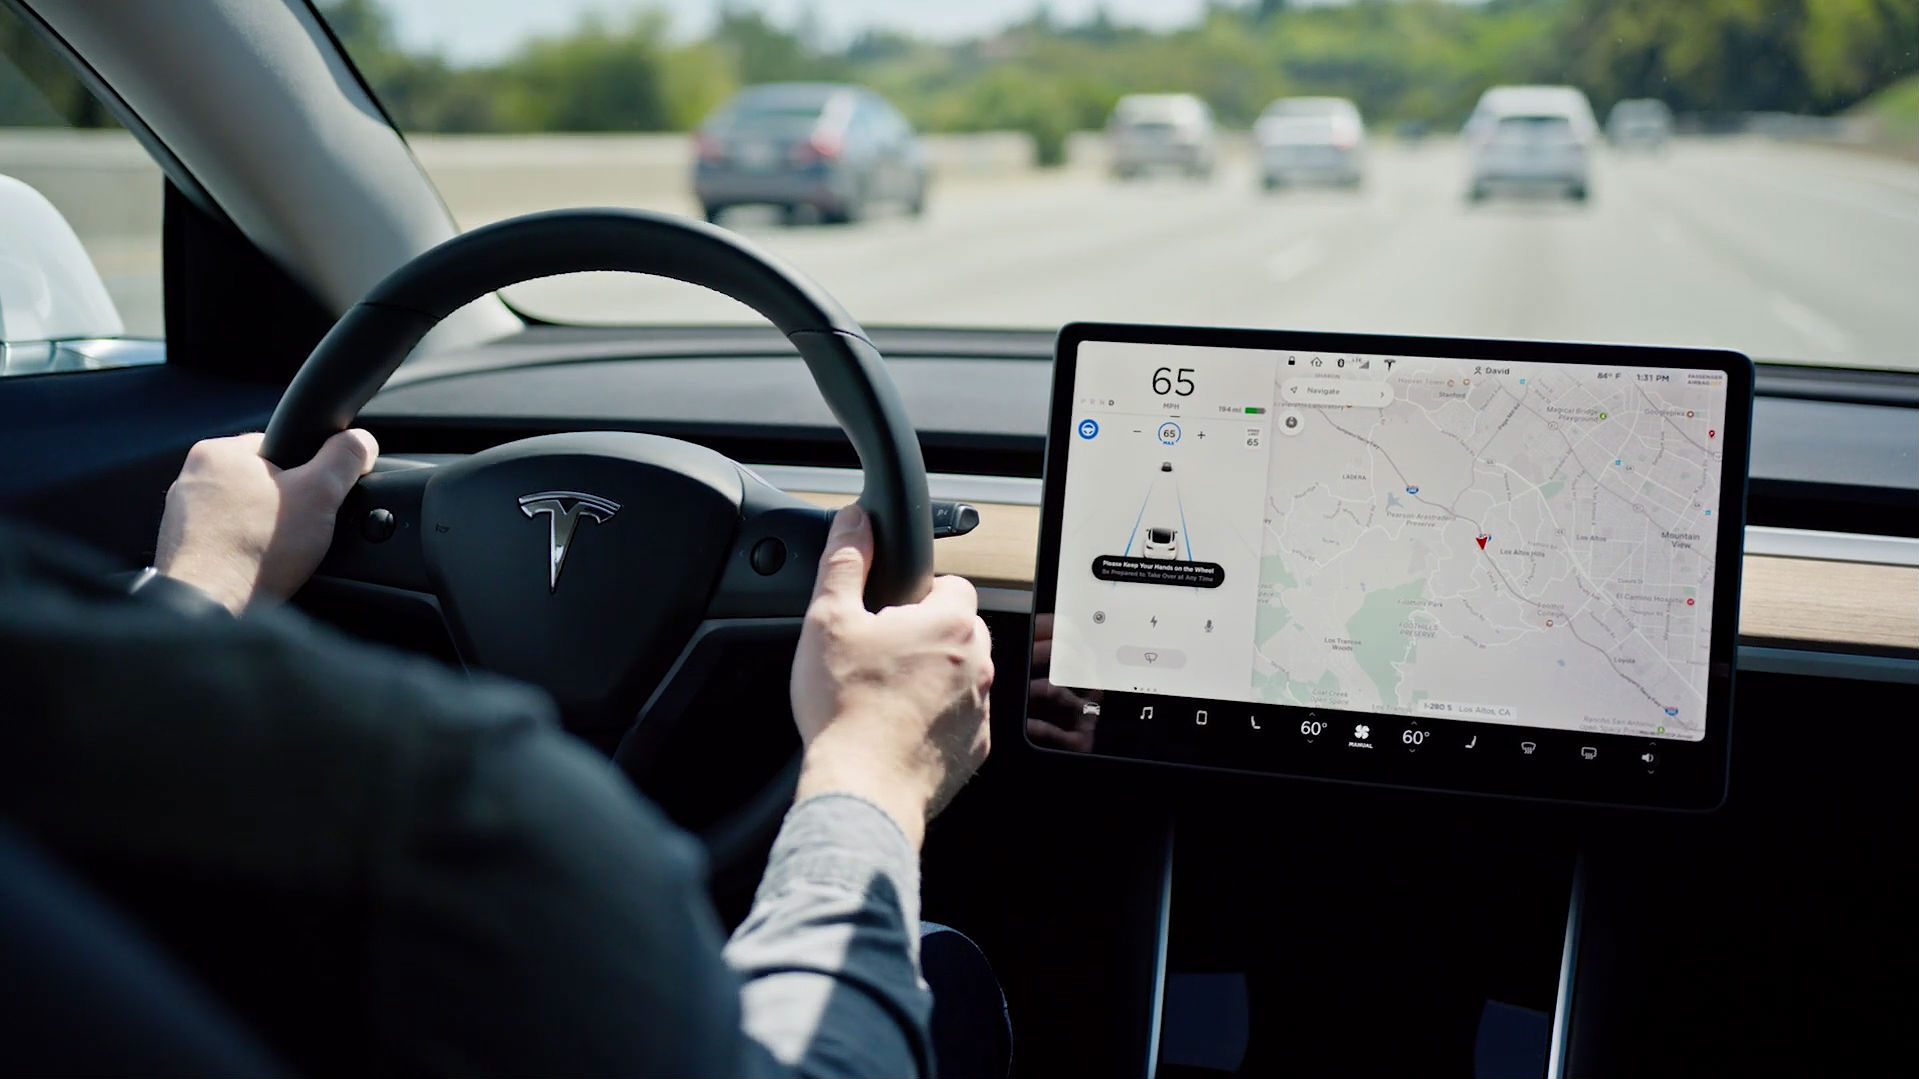 Tesla S Latest Safety Report Finds Drivers On Autopilot Had Fewer Accidents